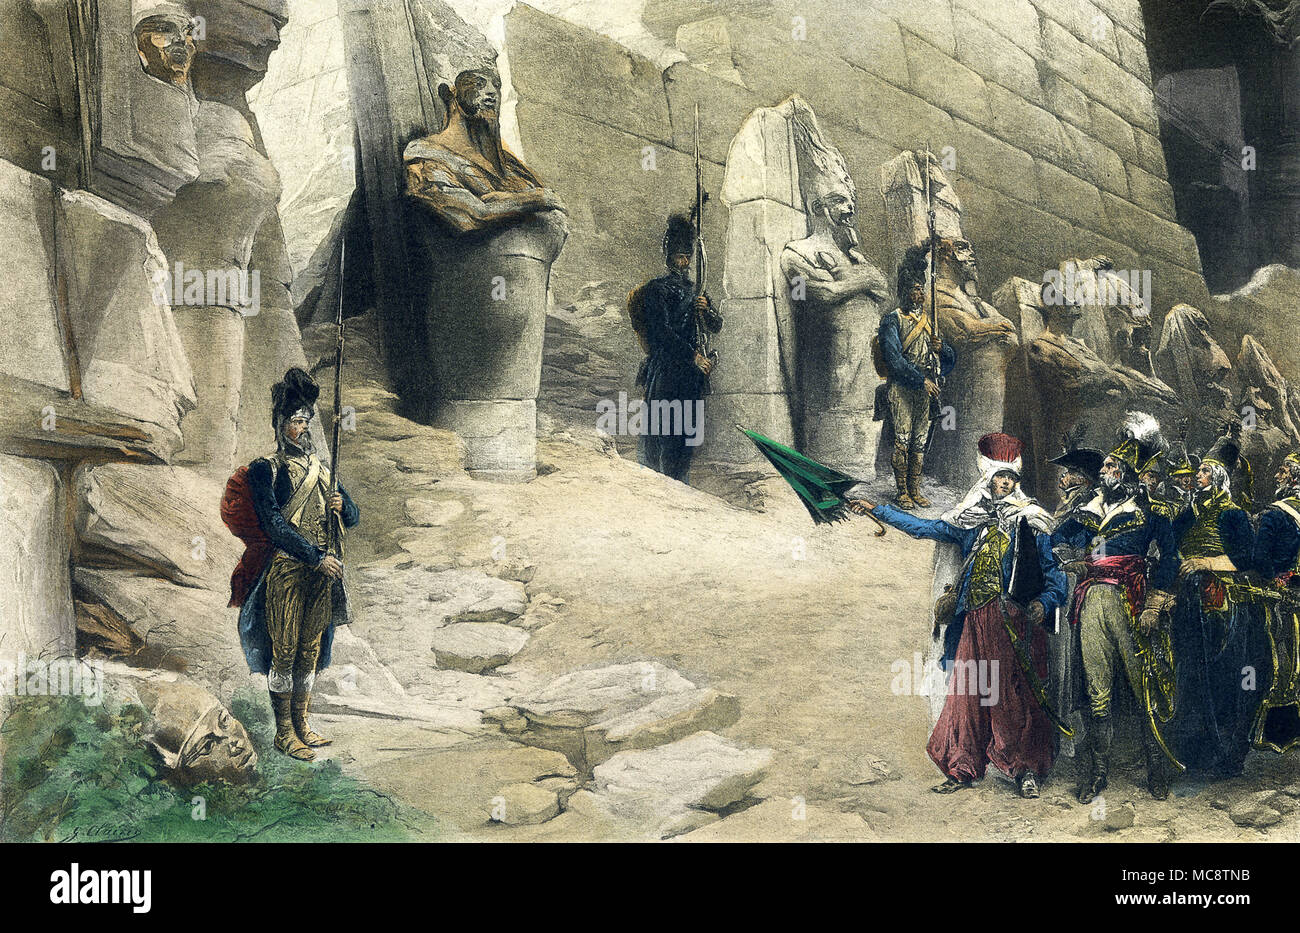 This illustration dates to around 1900 and shows Napoleon's soldiers at Karnak. When Napoleon was n Egypt, he toured the ancient sites, including the Sphinx, and had his savants note all pertinent facts. - Stock Image